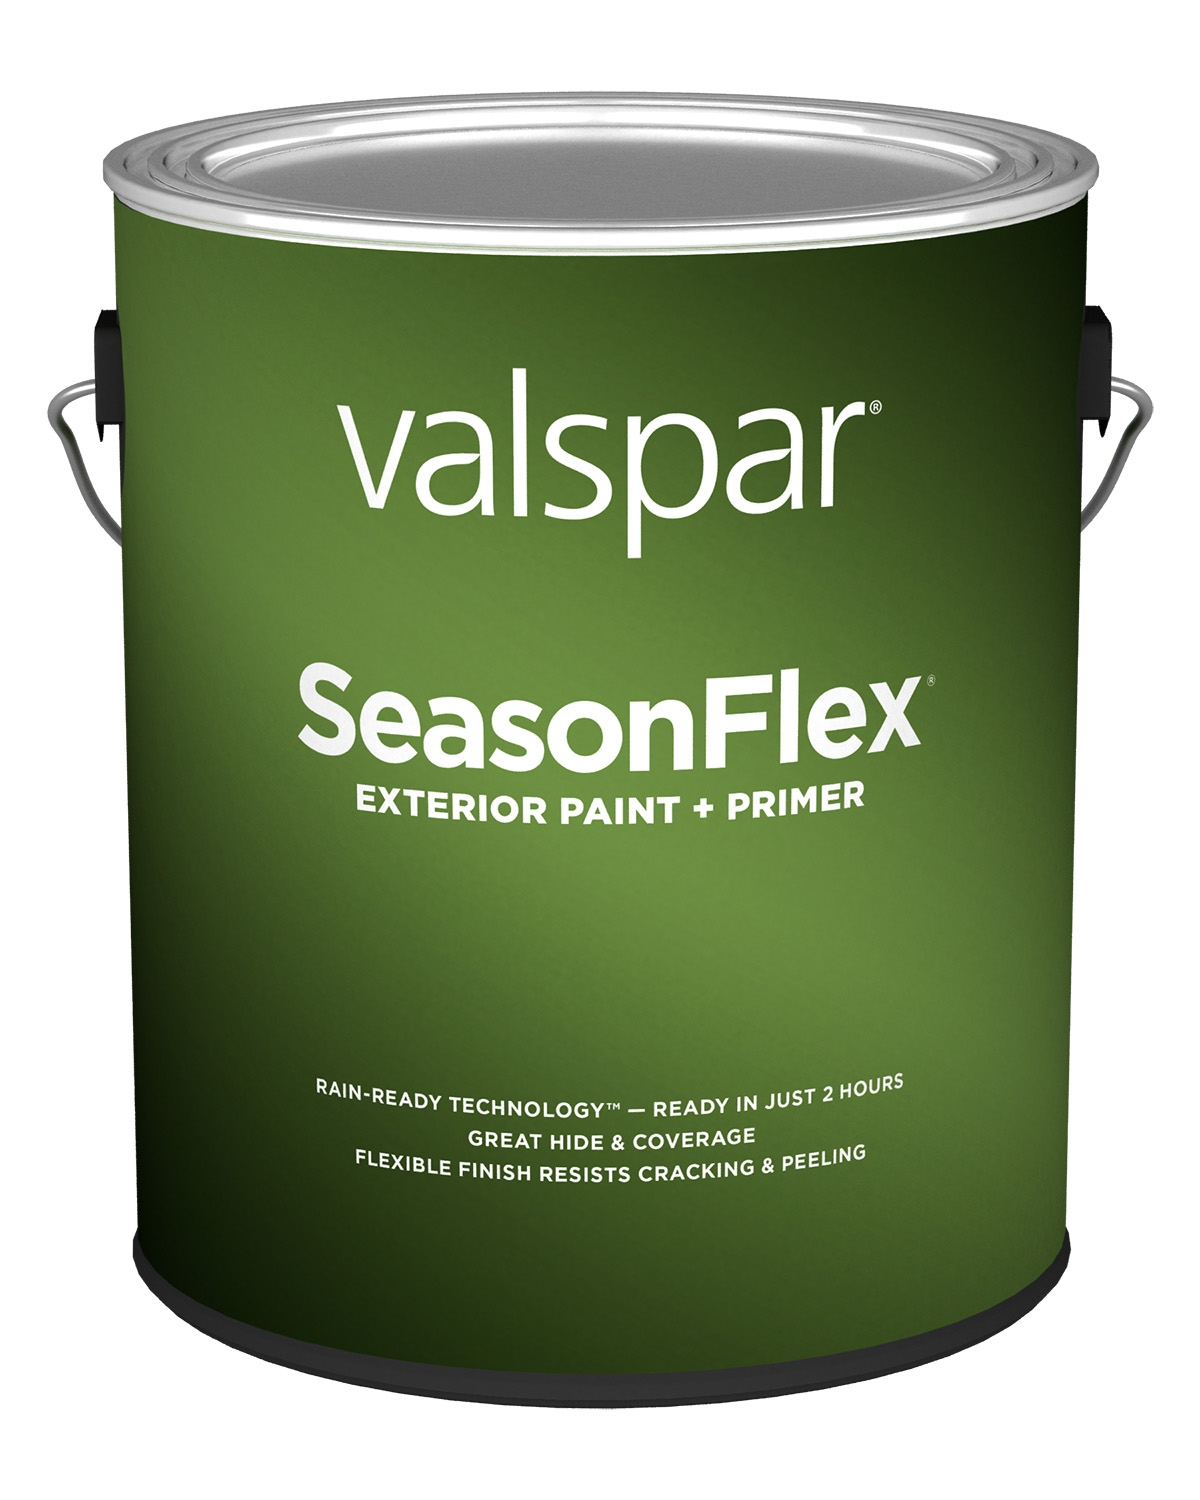 valspar interior exterior paint wood stain sealer on valspar paint id=19726